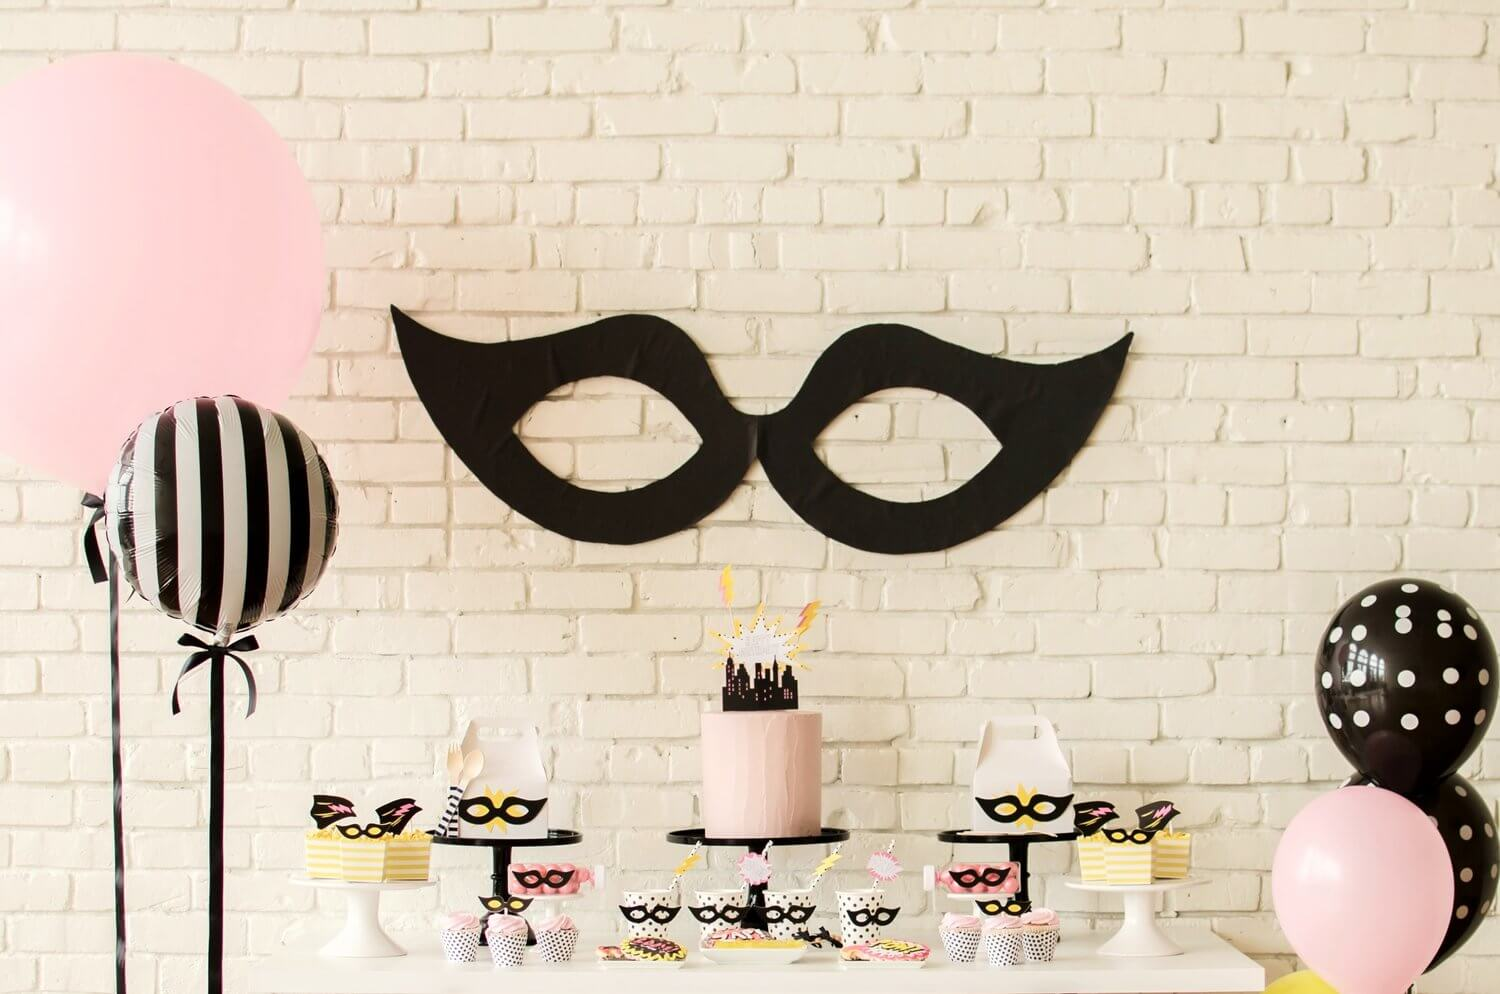 Balloon Decorating Tip for Kids Parties . . . frame the dessert table with balloons in matching party colors with different sizes and shapes - see more kids party ideas on Mint Event Design www.minteventdesign.com